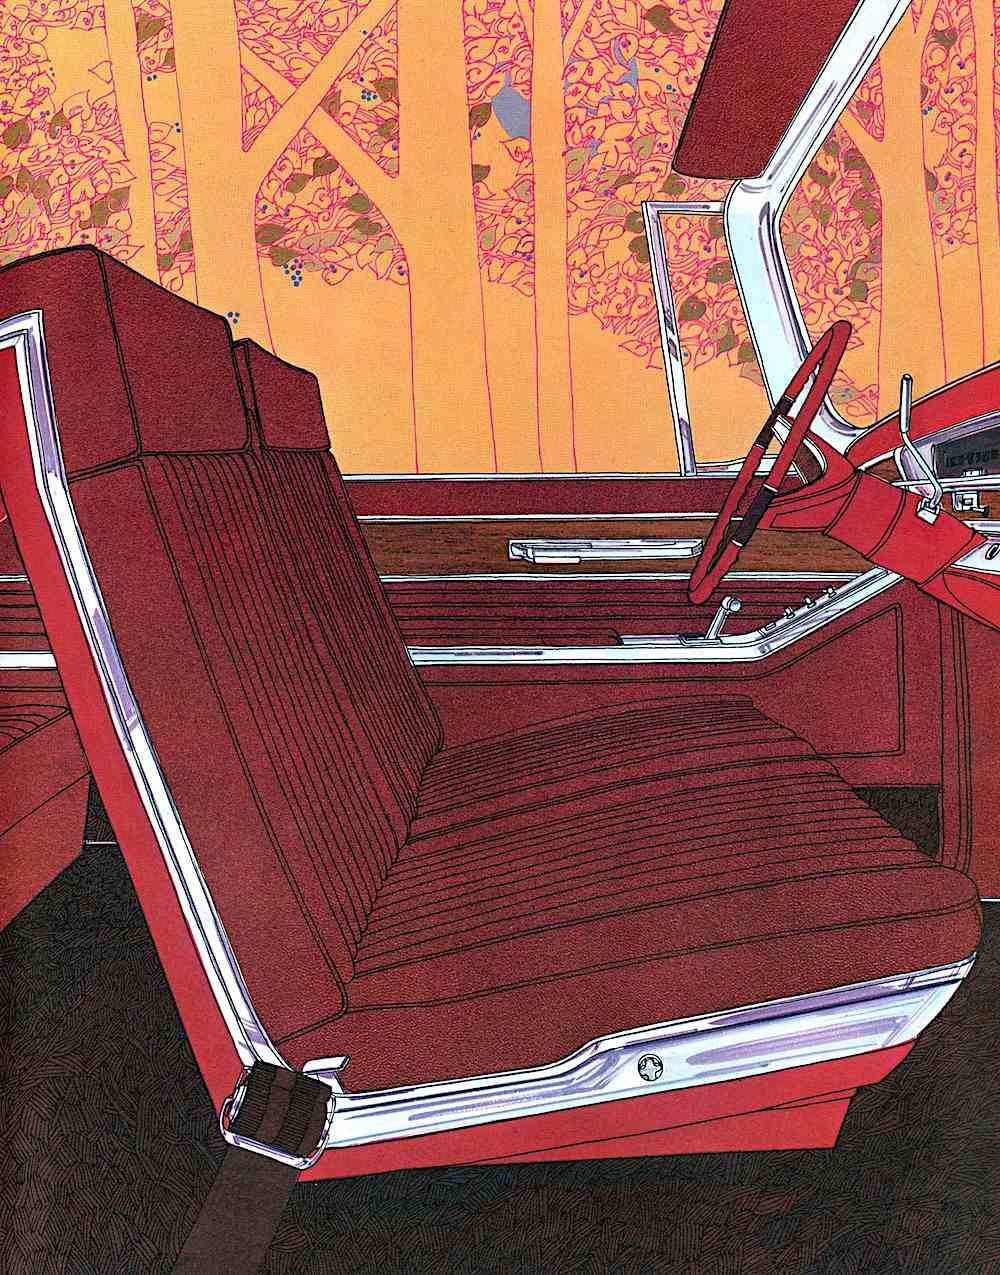 a 1960s illustration of stylish red car seats